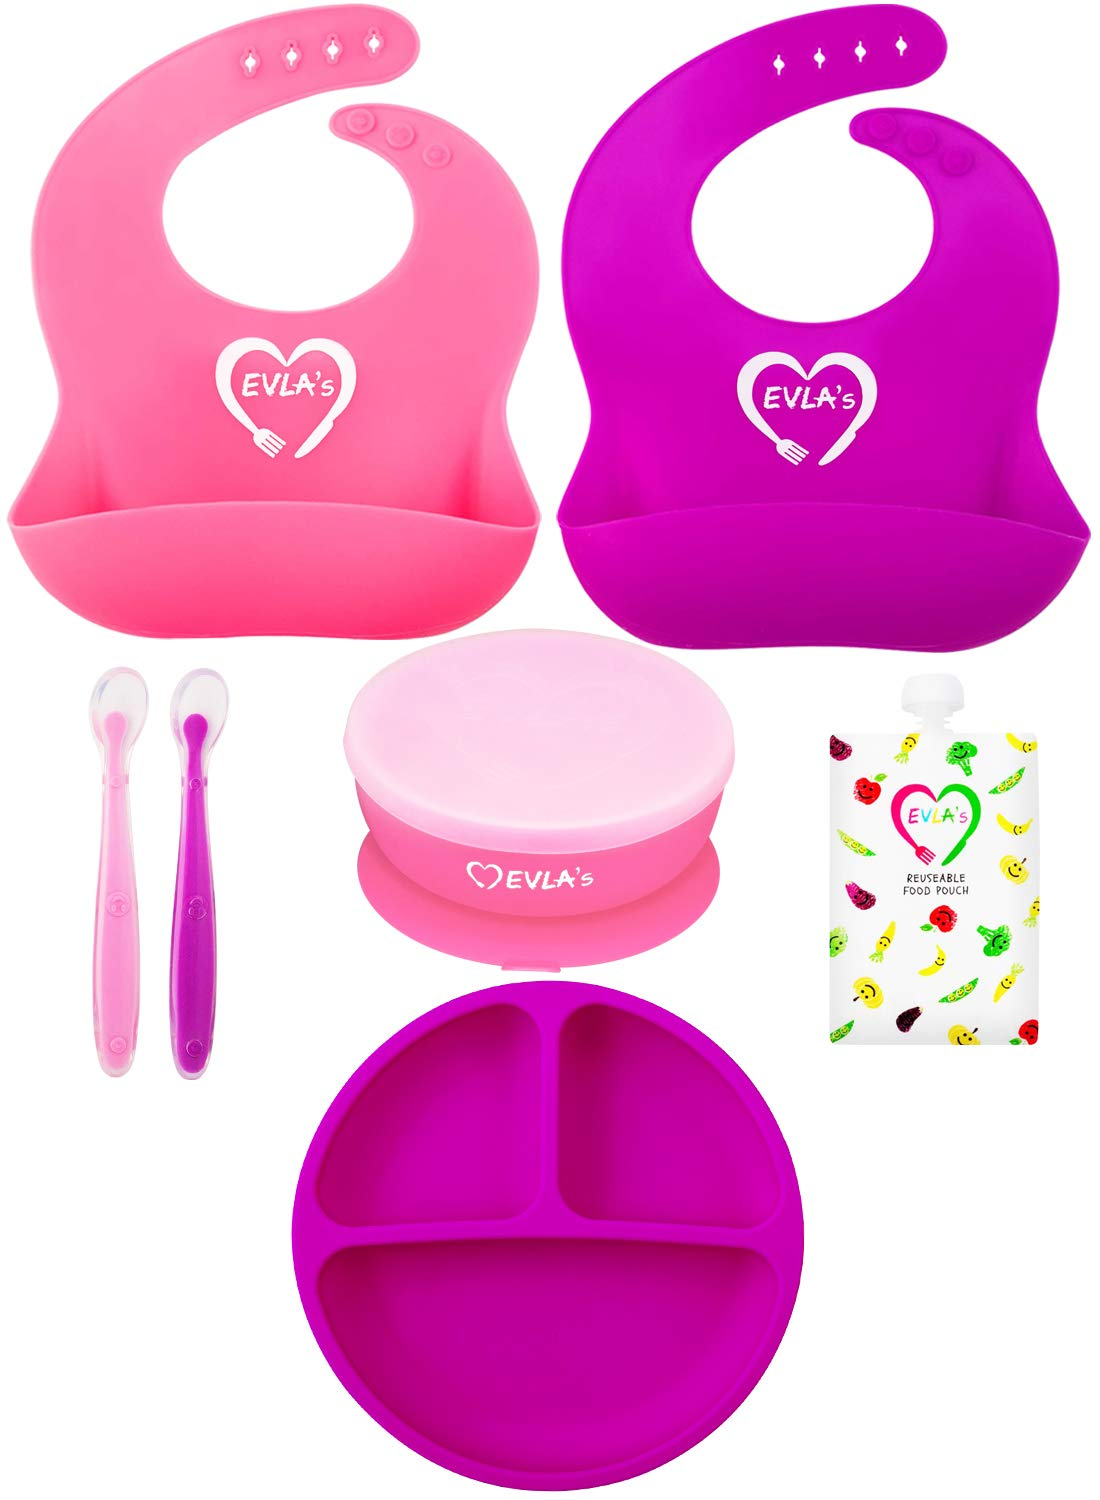 Baby Weaning Bibs | Baby Bowls | Baby Plates | Weaning Spoons | Complete Baby Feeding Set | Suction Bowl & Plate Stay On Table | Less Mess & Easy Clean (Dishwasher Safe) | LFGB Approved Silicone